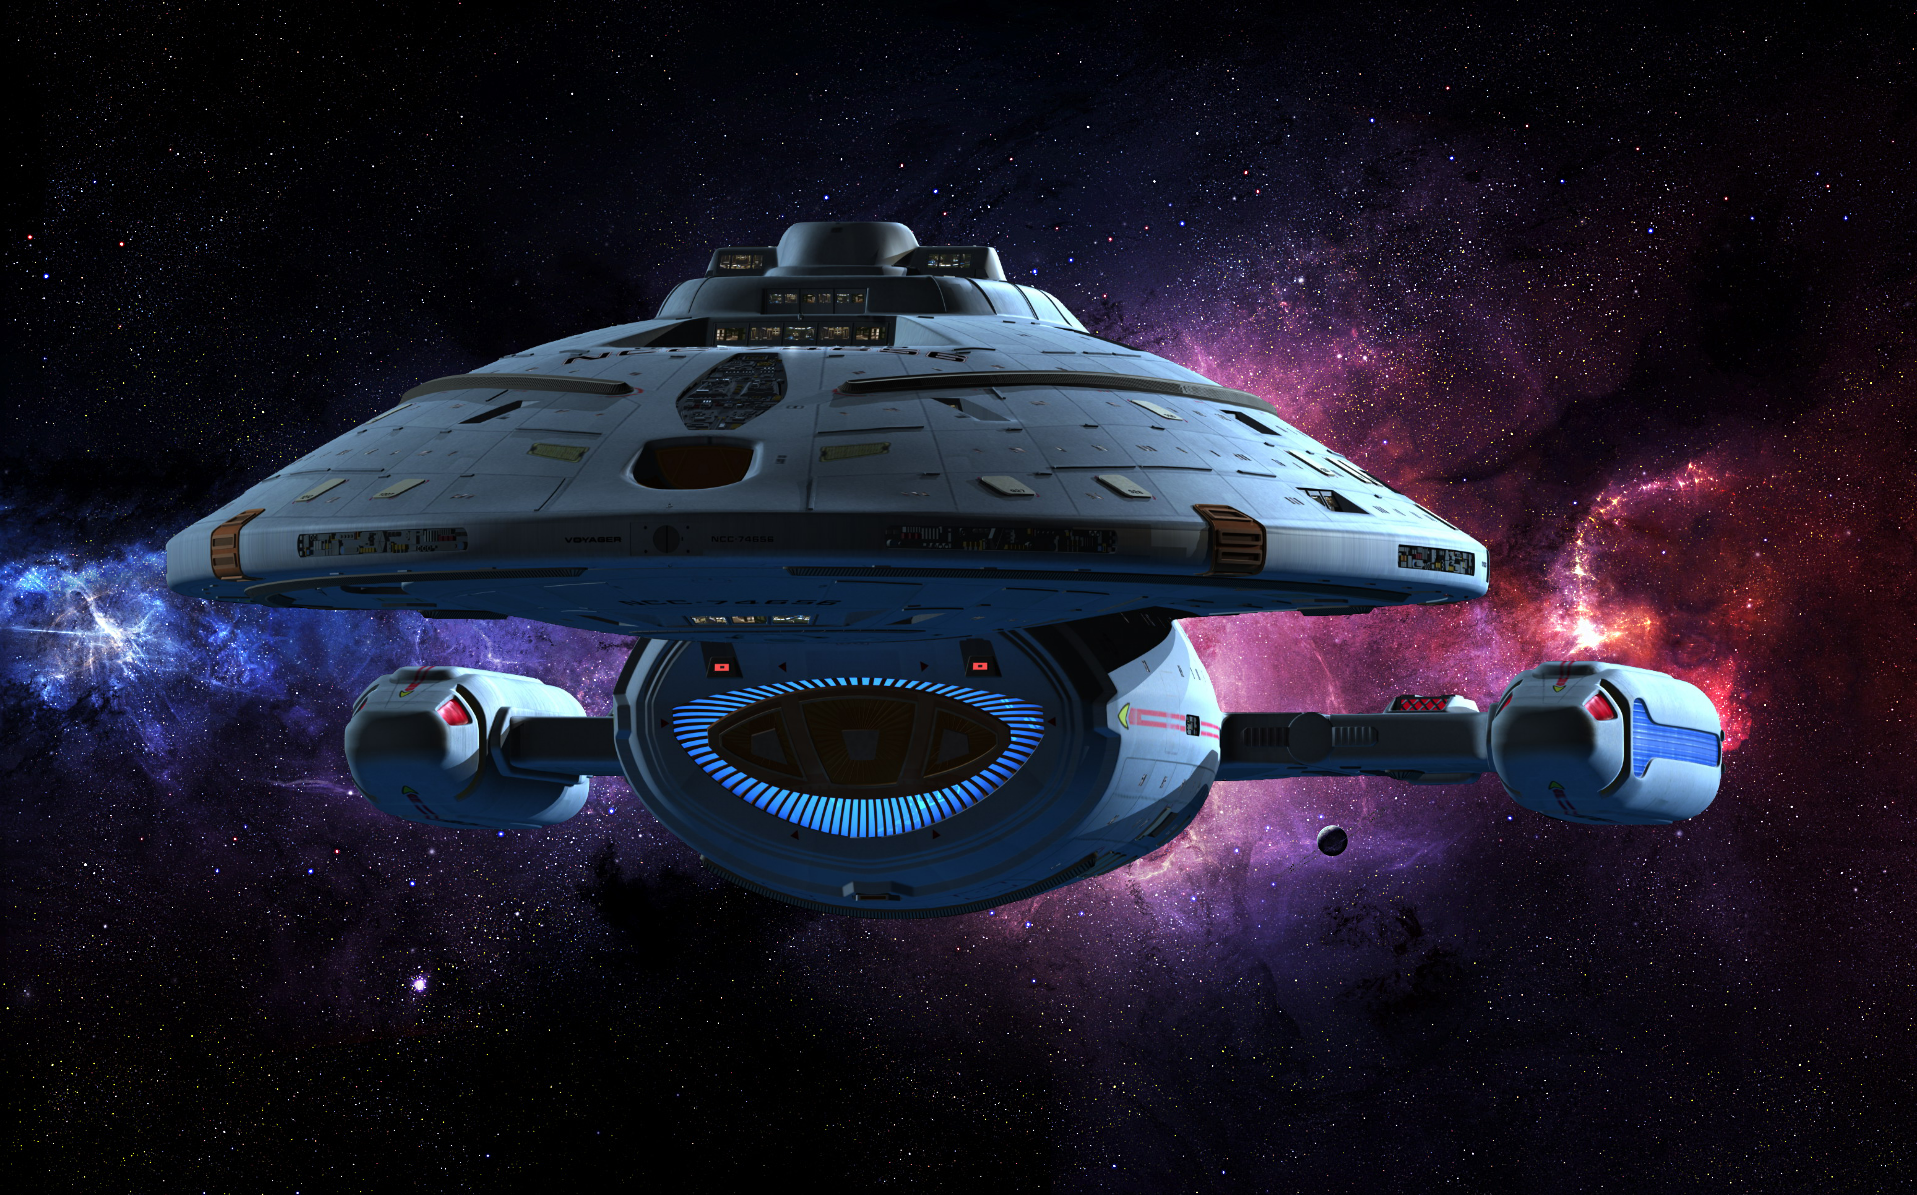 Voyager front view 1 Wallpaper and Background 1917x1195 1917x1195